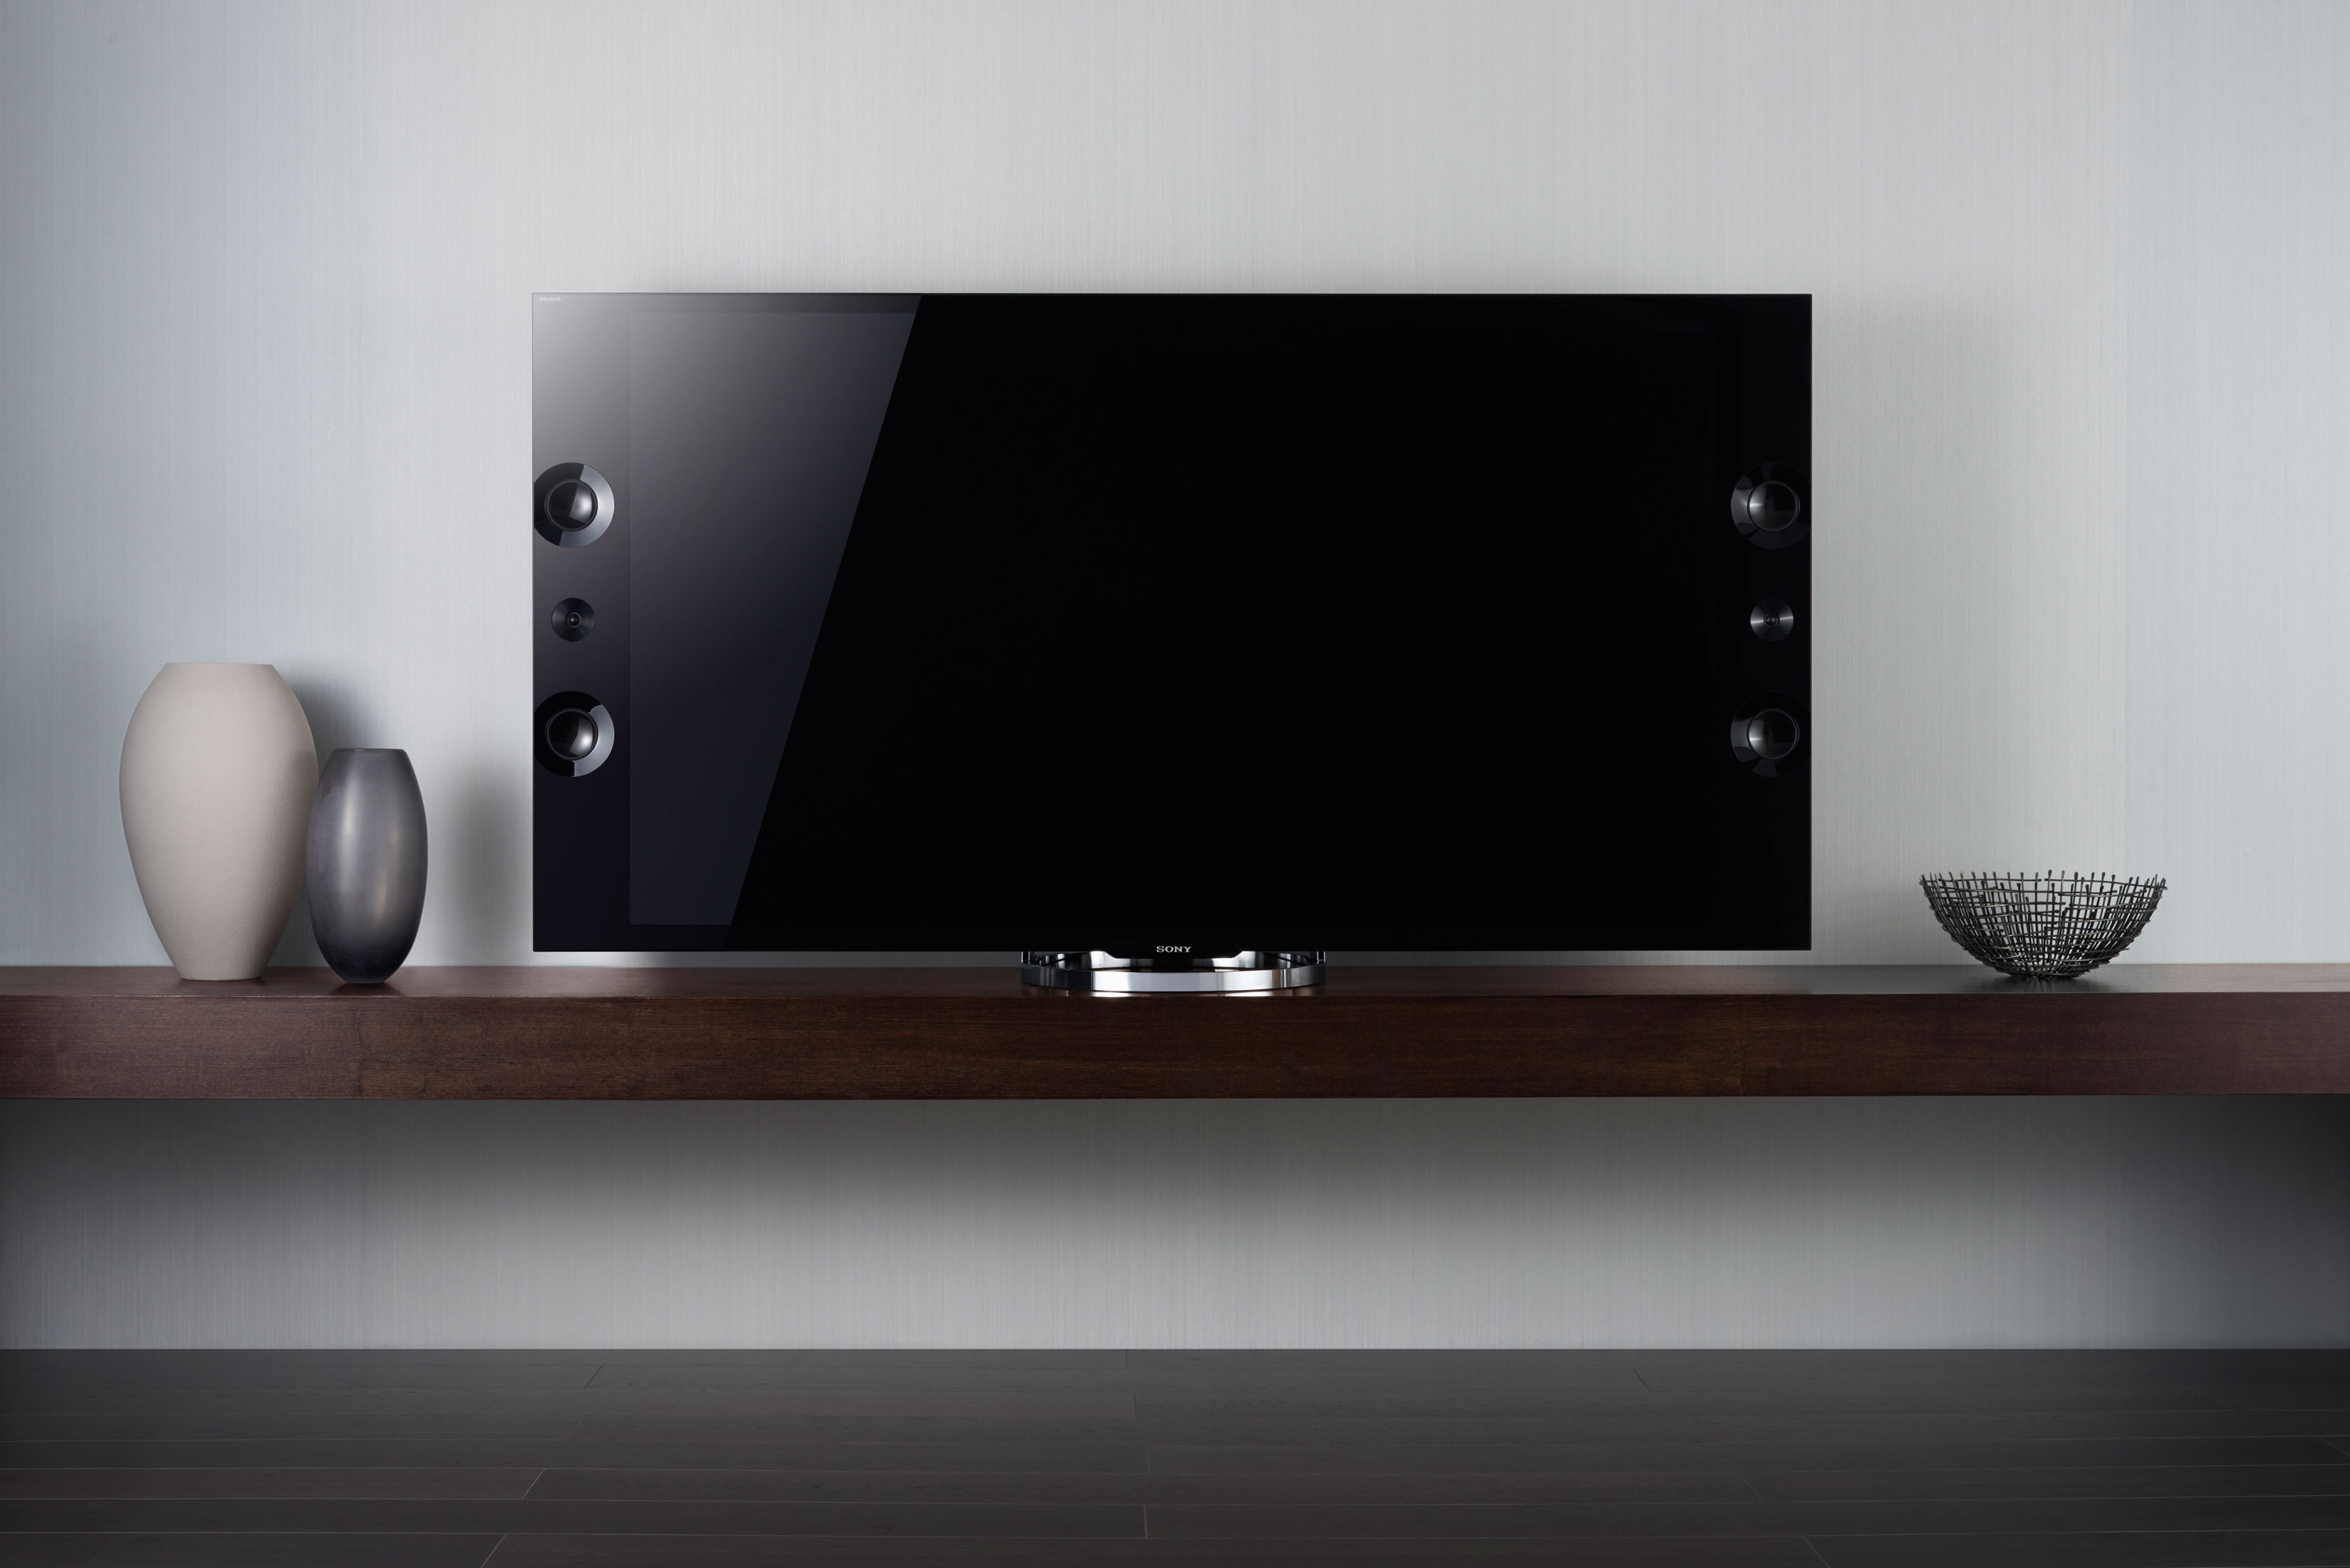 bravia x9 ultra hd neuer super fernseher von sony weblogit. Black Bedroom Furniture Sets. Home Design Ideas